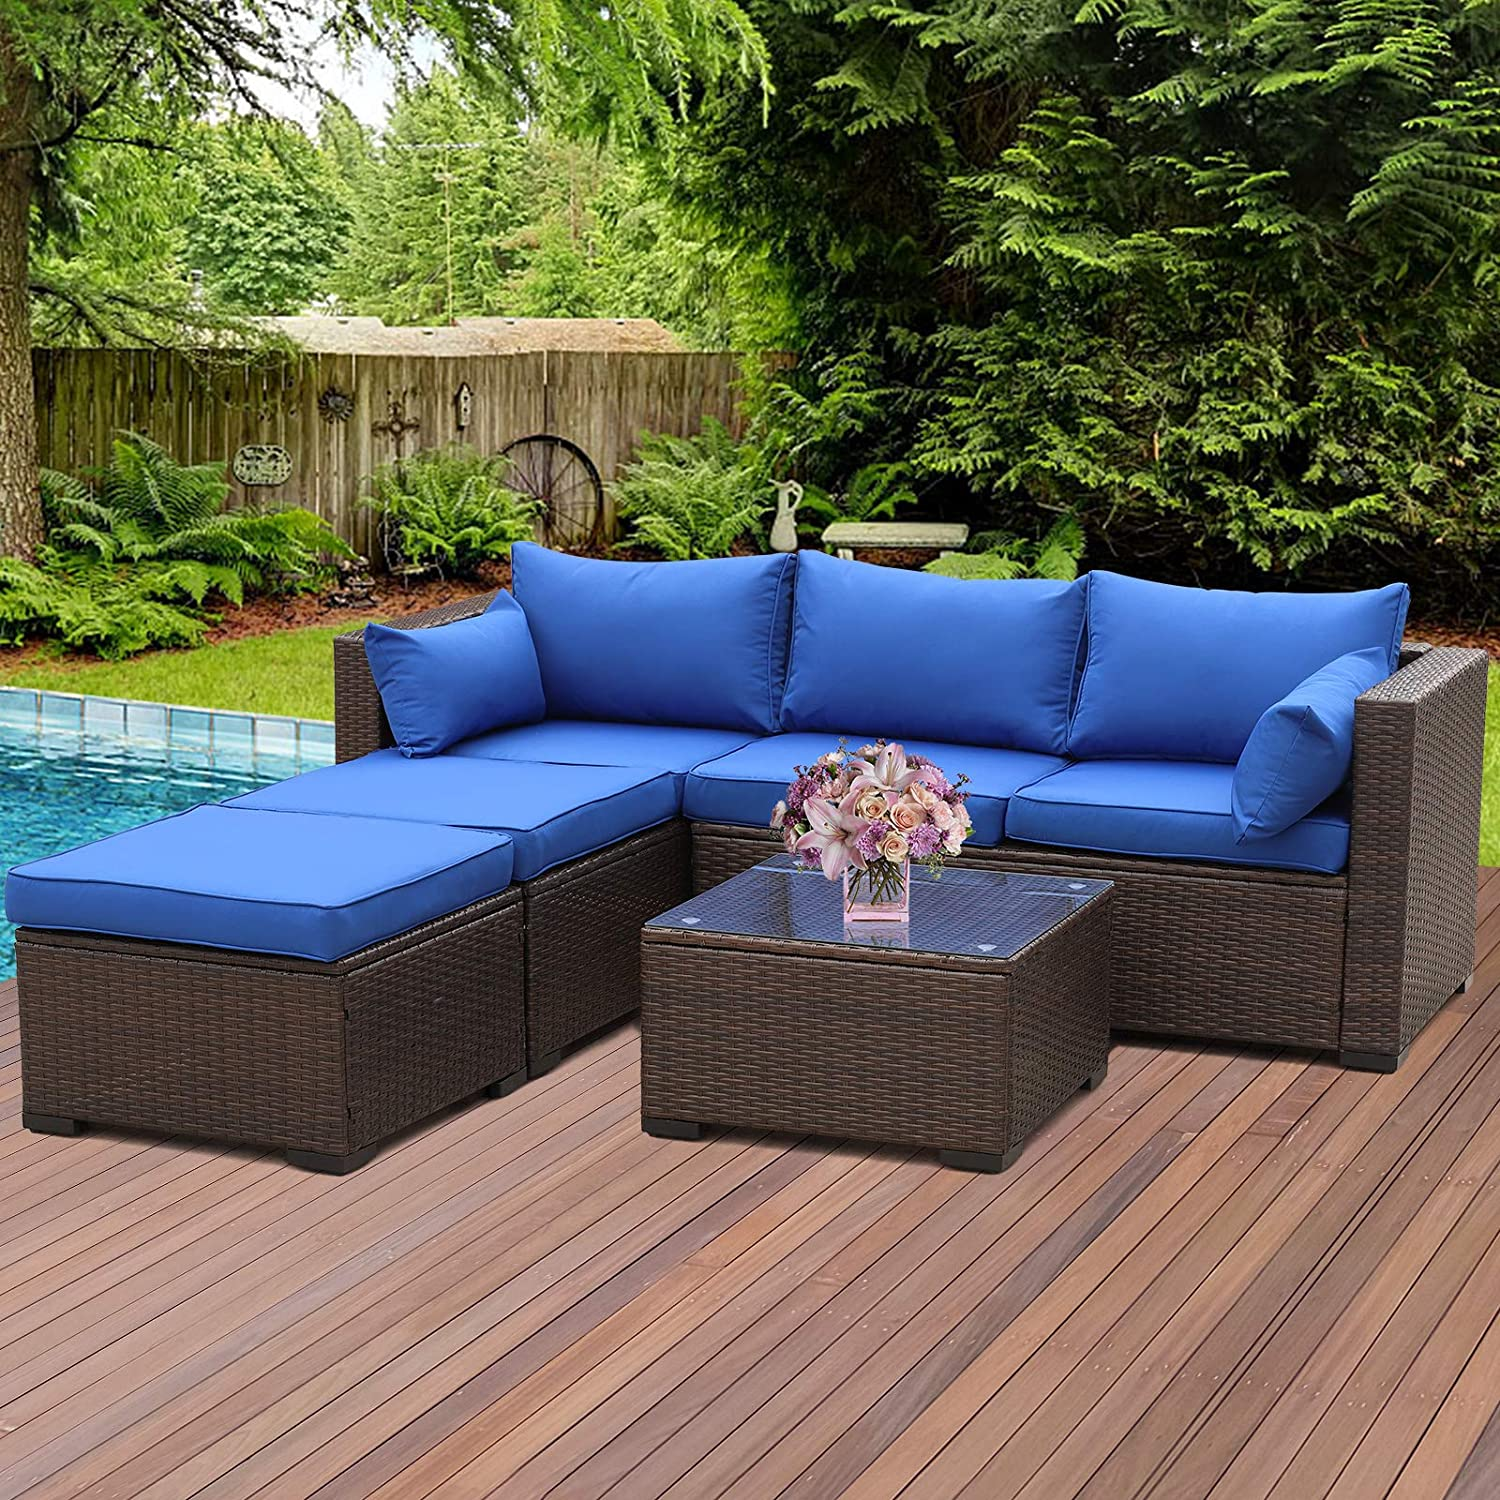 Outdoor Sectional Sofa Set 4-Piece 6-Seater Brown PE Wicker Patio Conversation Furniture Couch with Royal Blue Cushion, 2 L-shaped Loveseats and Ottomans, Multi-purpose tempered glass Coffee Table